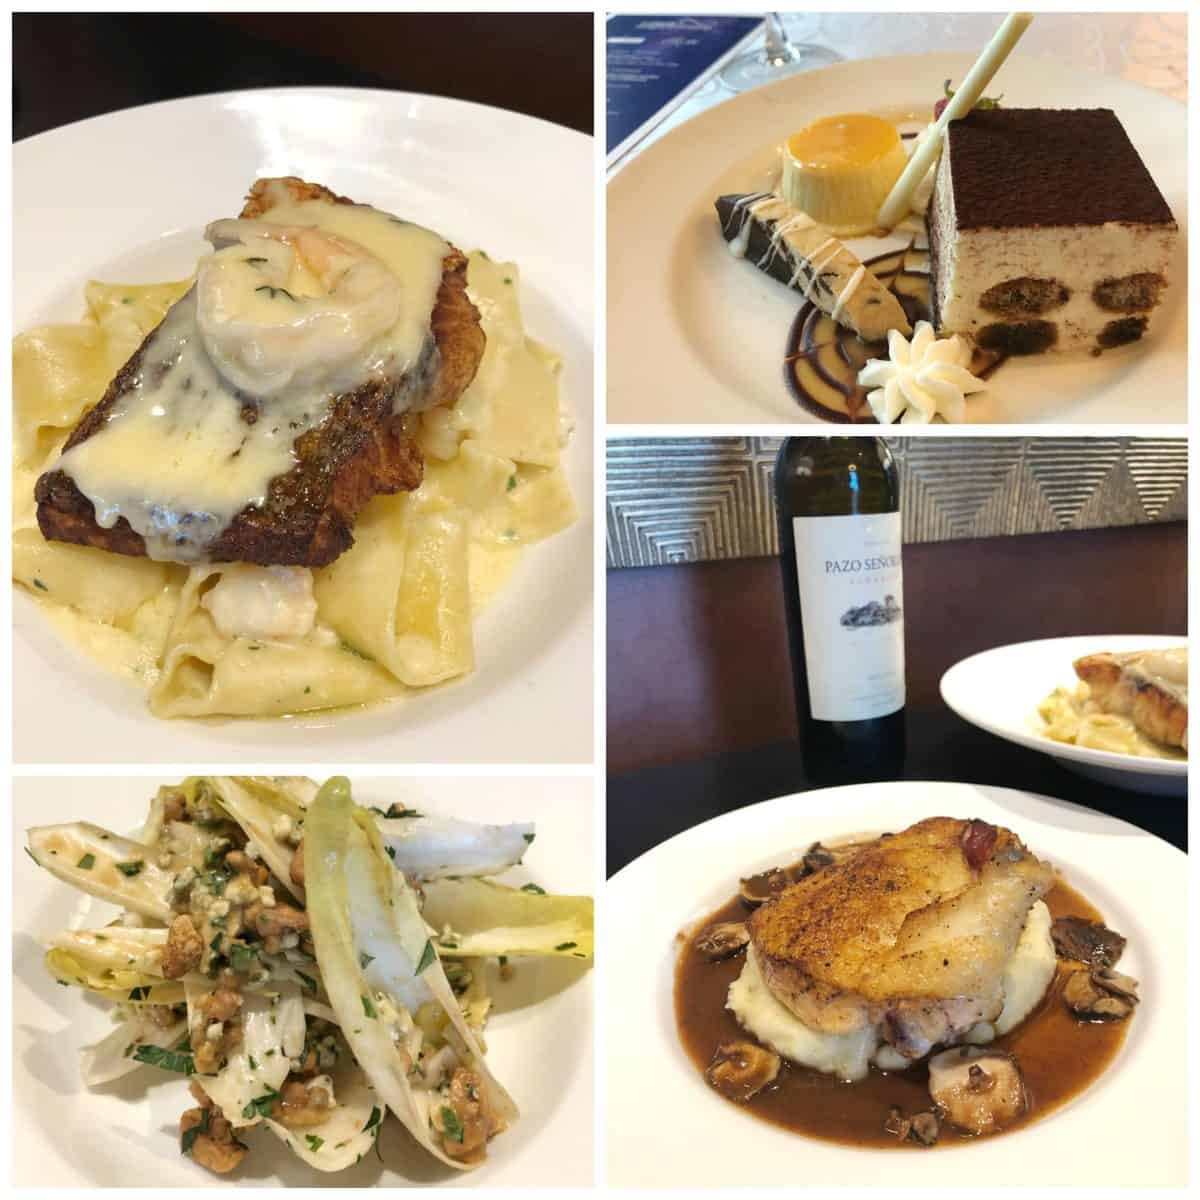 4 photo collage of appetizer, entree, dessert, and side dish at Gorte Grille at Reunion Resort.